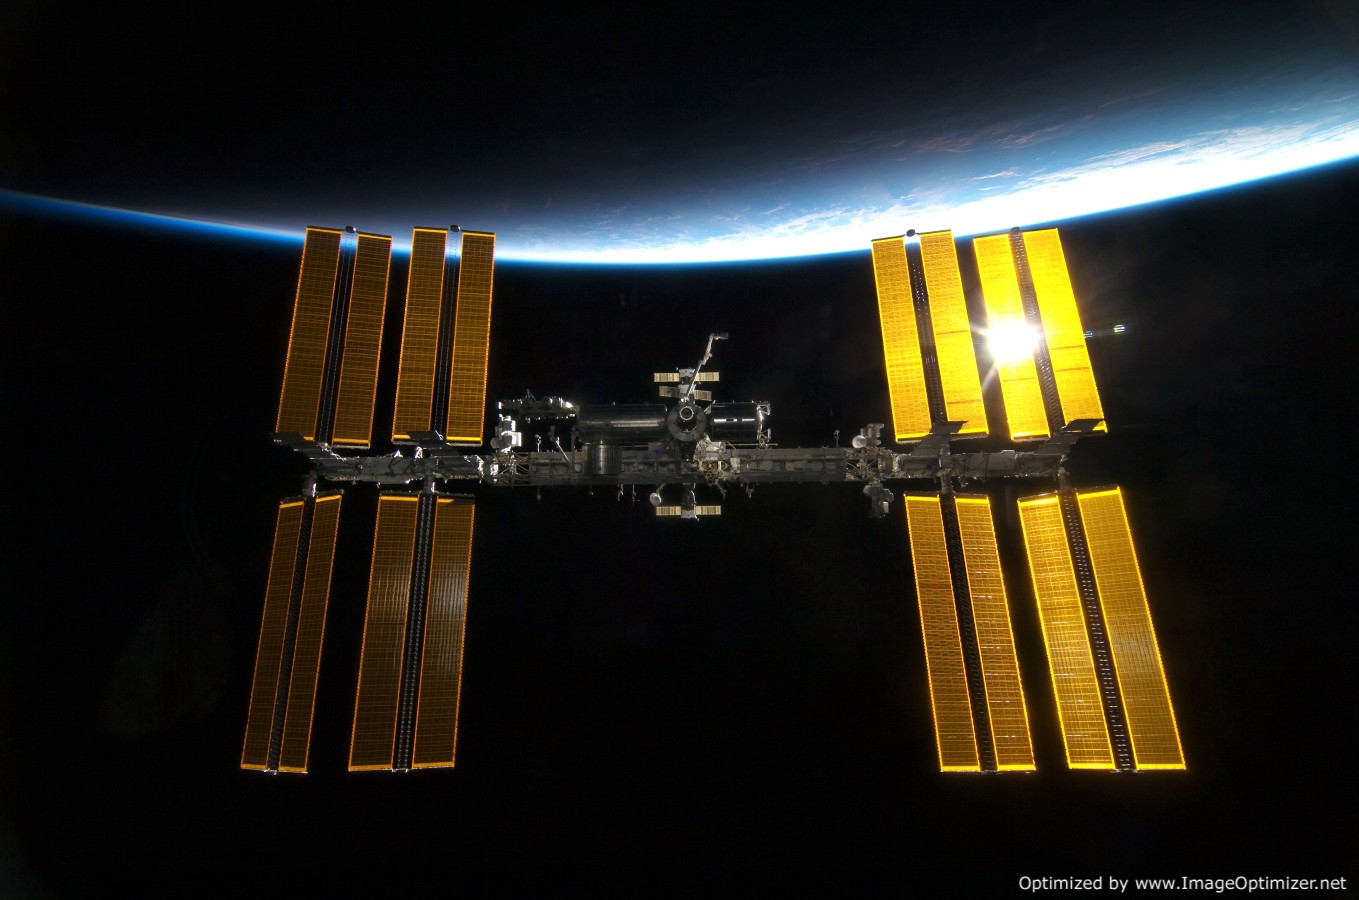 Image of the International Space Station licensed to Craig Martineau from RawPixel